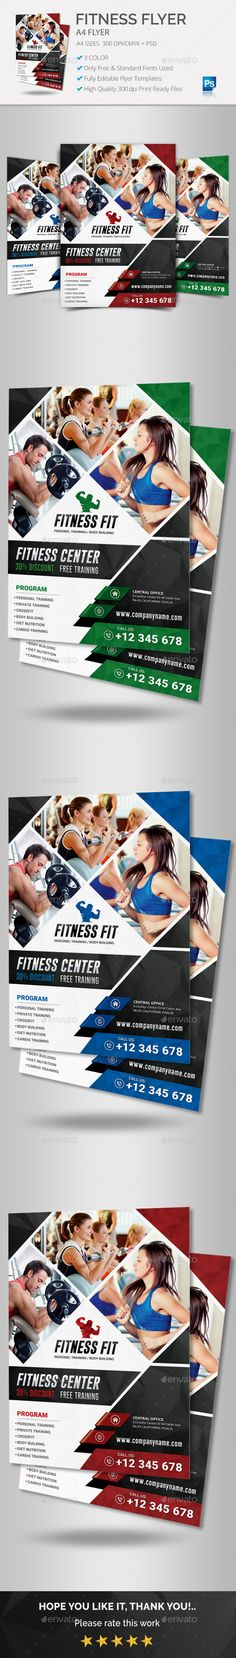 Fitness Flyer Vol 01 by CEYOZER Fitness Flyer Vol 01. Professional Designs.FeaturesA4 SizePSD Fully Editable Template Included Print Ready CMYK PSD FilesHigh Qual